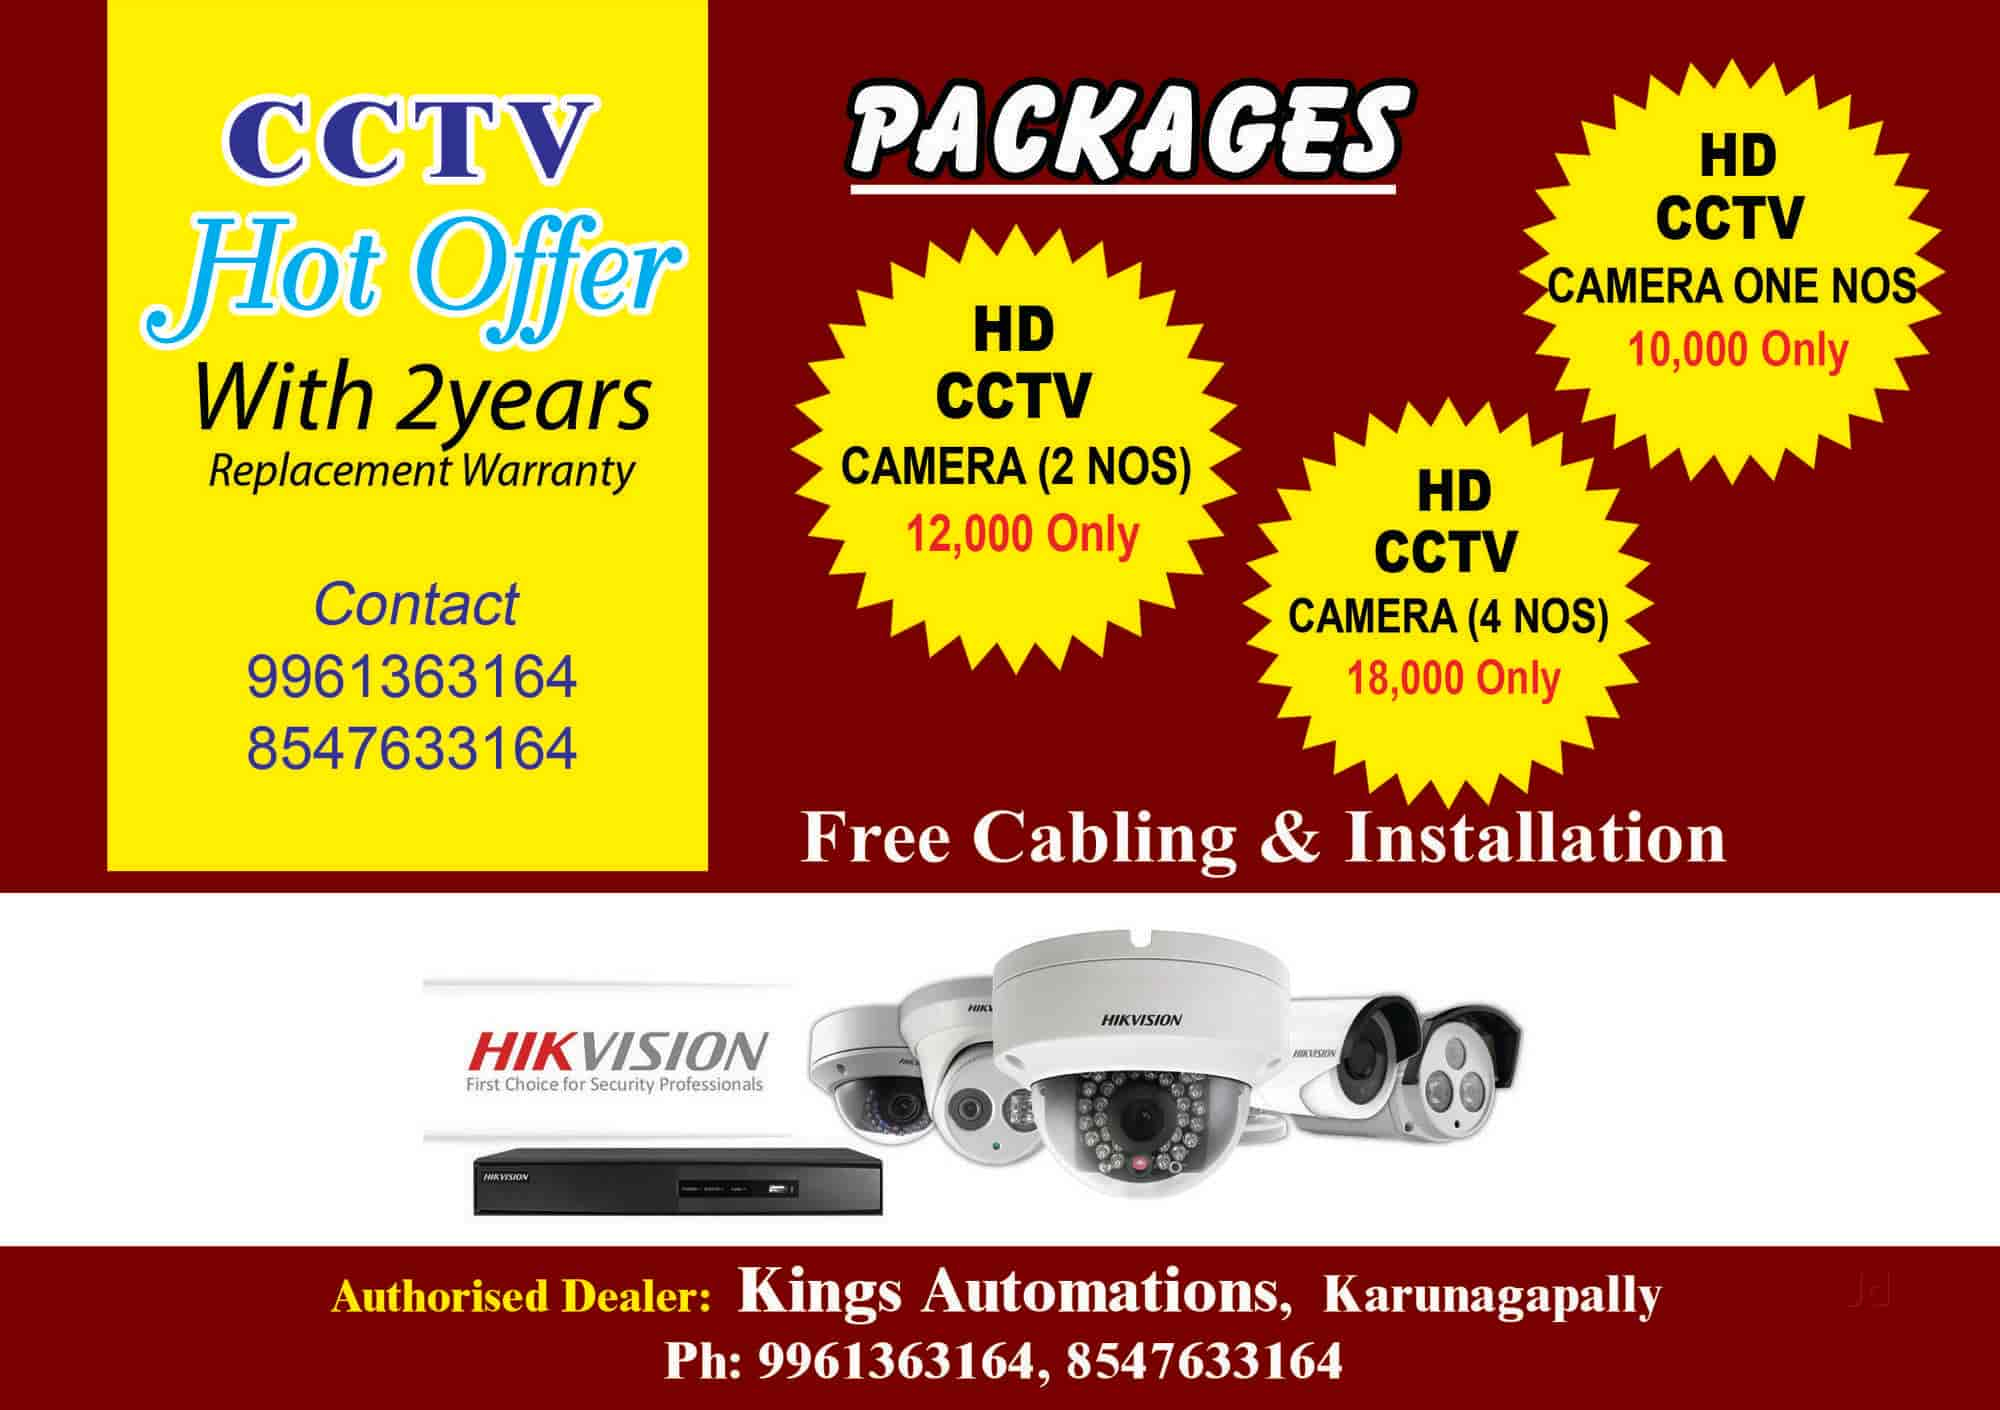 Kings Automations, Karunagappally - CCTV Dealers in Kollam